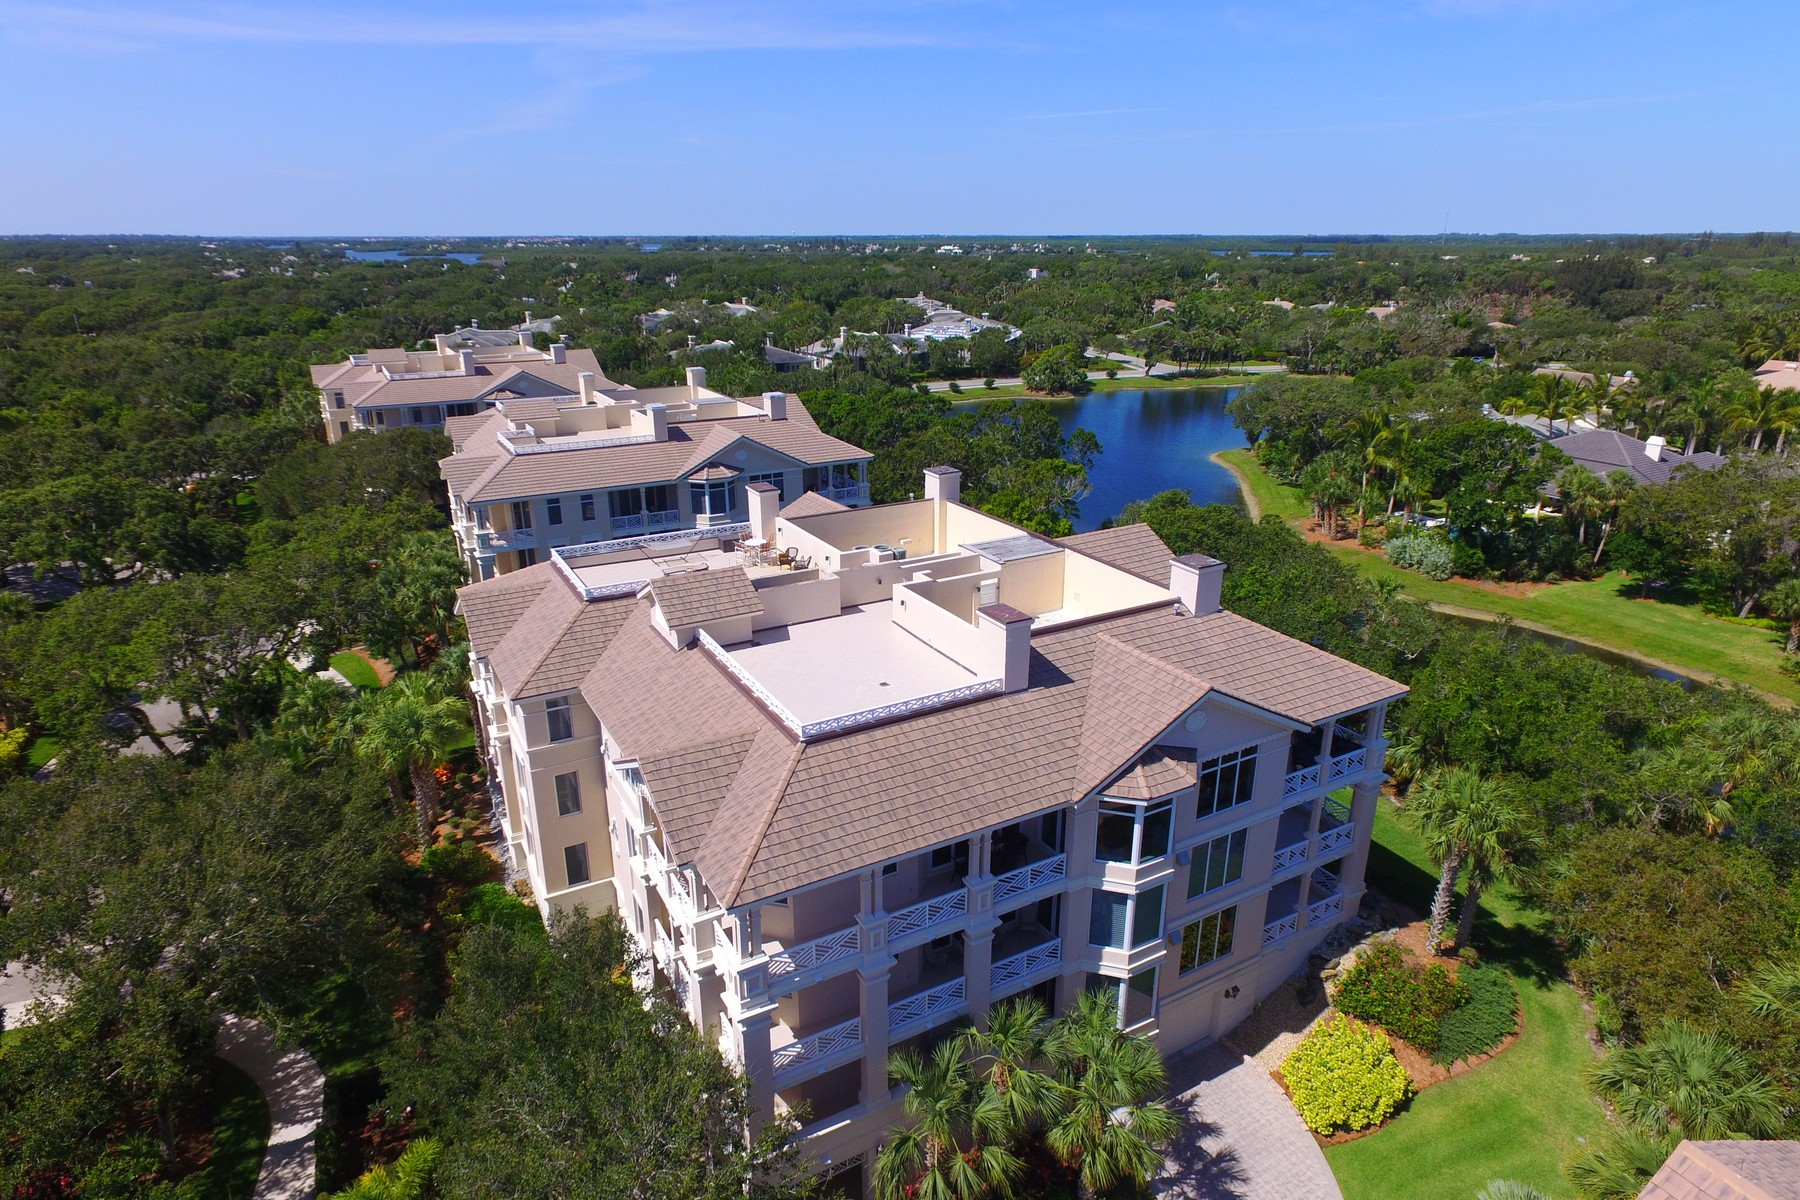 Condominio por un Venta en Beautifully Appointed Luxury Condo 701 N Swim Club DR, #4B, Vero Beach, Florida, 32963 Estados Unidos